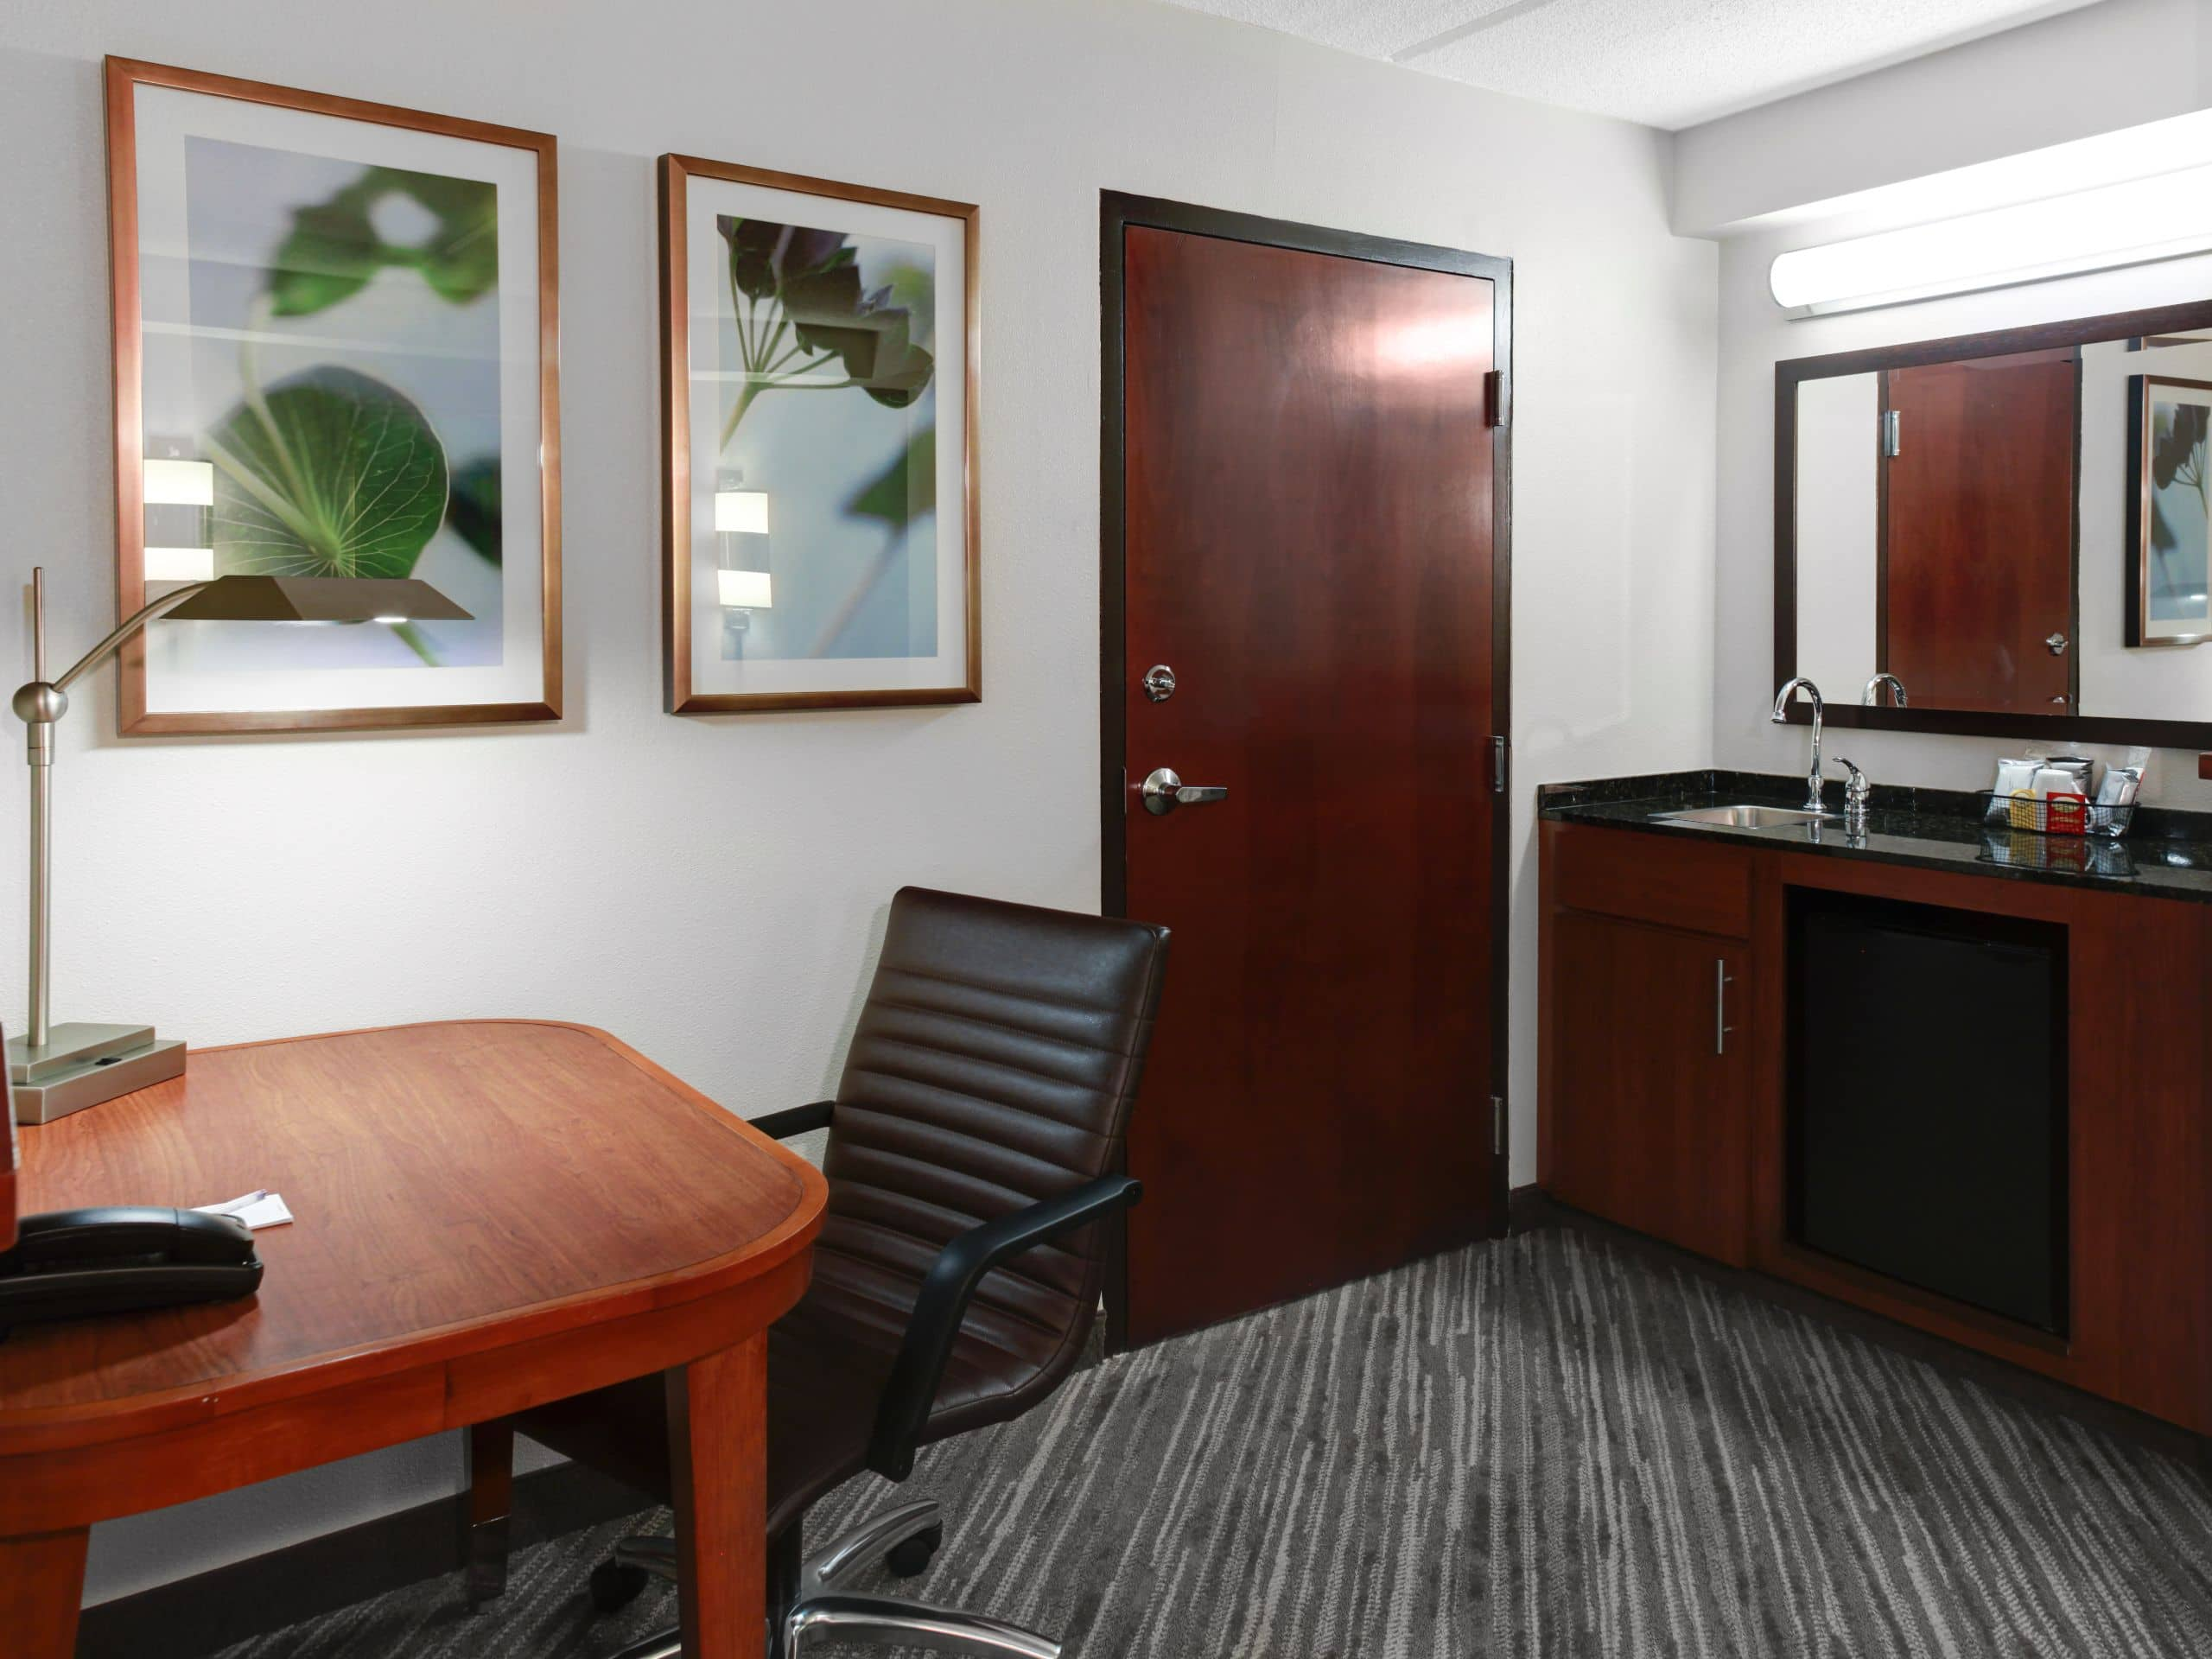 Comfortable Hyatt Place Ago Itasca P050 Guestroom Desk Wet Bar What Is Wet Bar Meaning What Is A Kitchenette Wet Bar houzz 01 What Is A Wet Bar